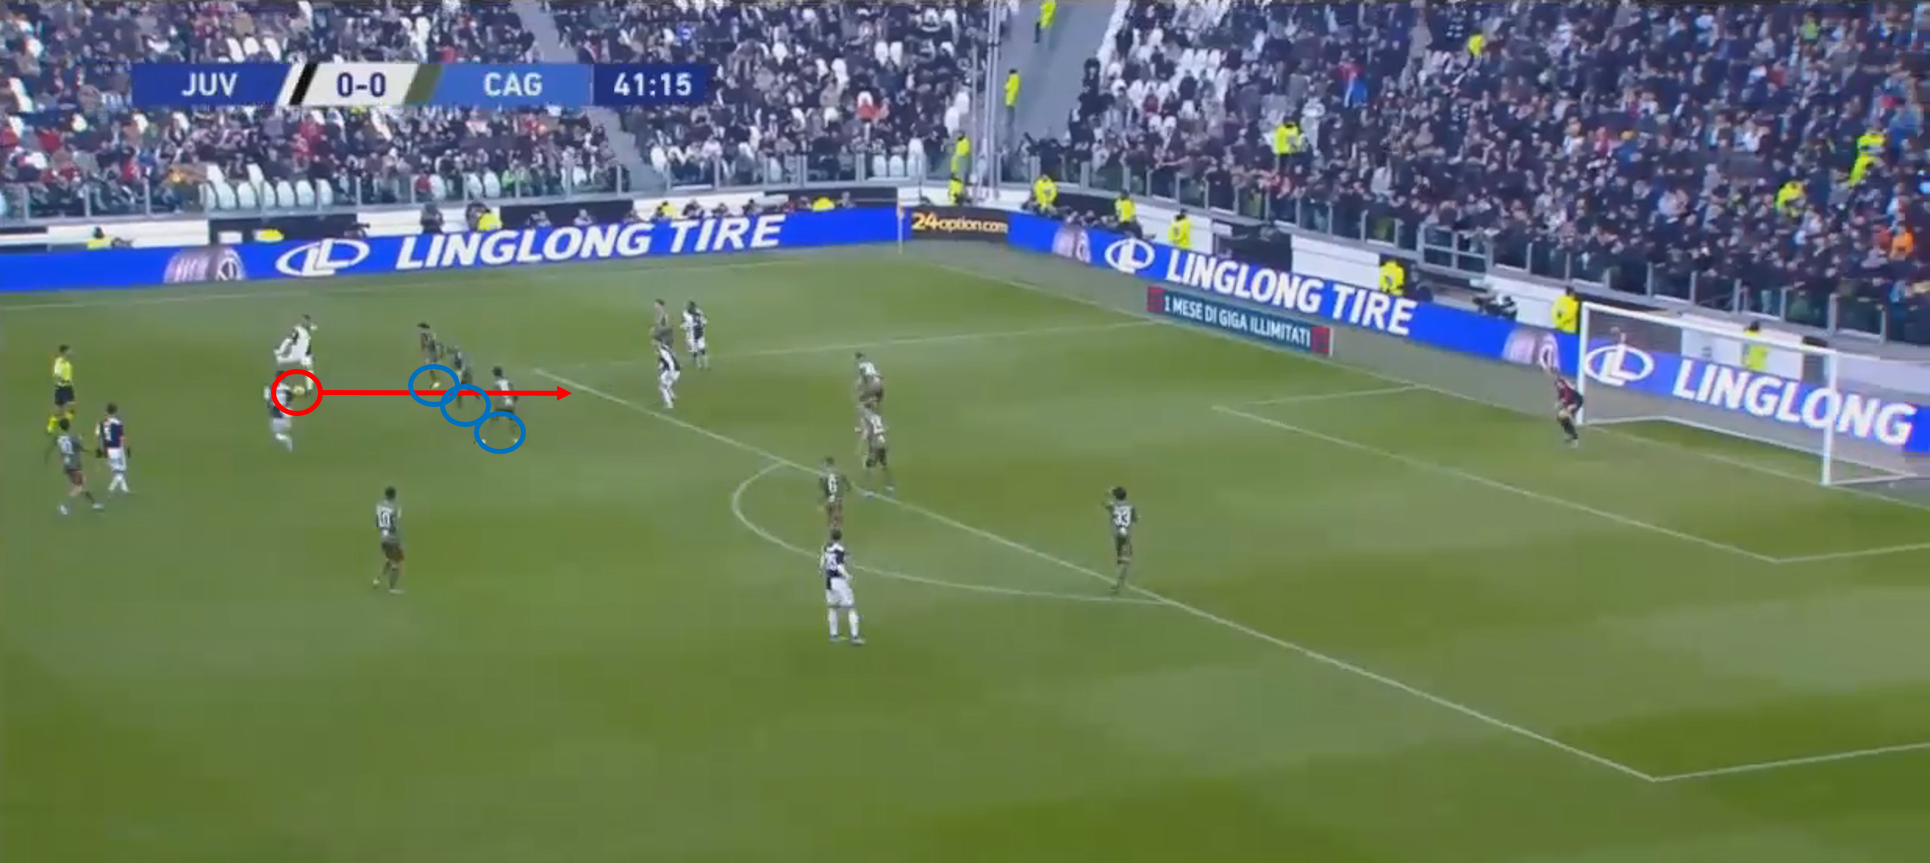 Cristiano Ronaldo 2019/20 – Worth the €100m? - scout report - tactical analysis - tactics